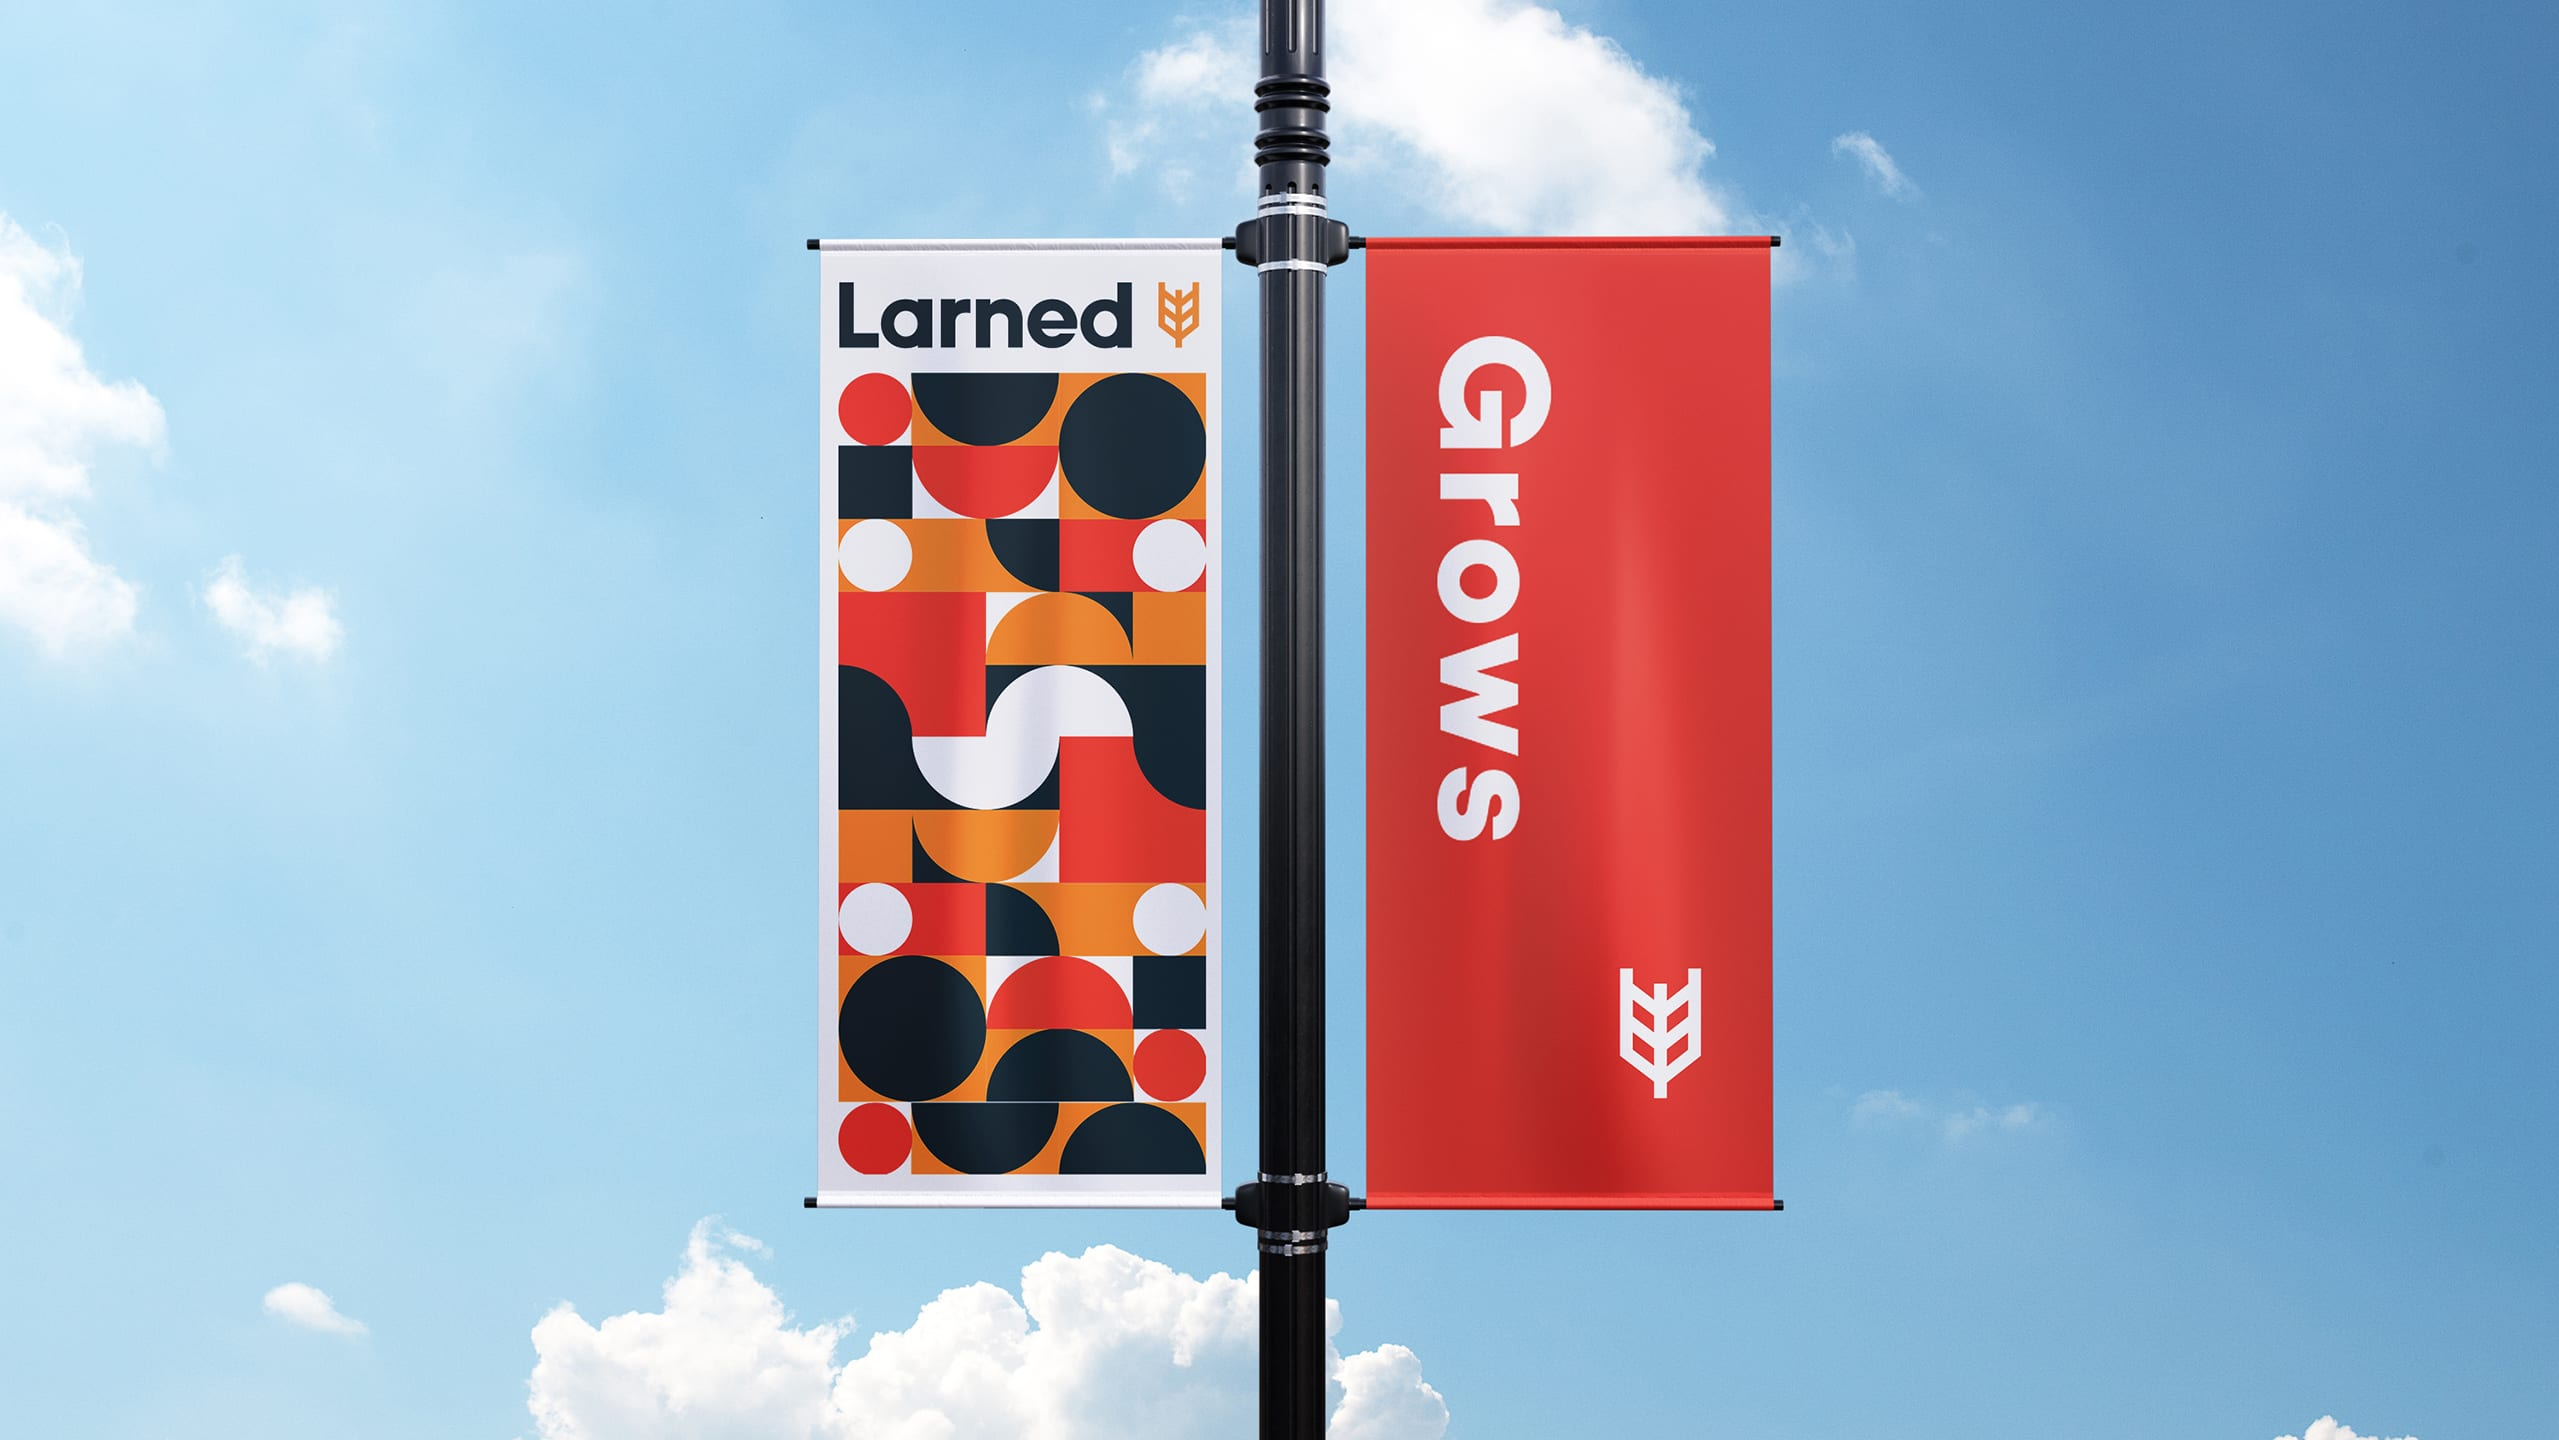 Larned Kansas Case Study